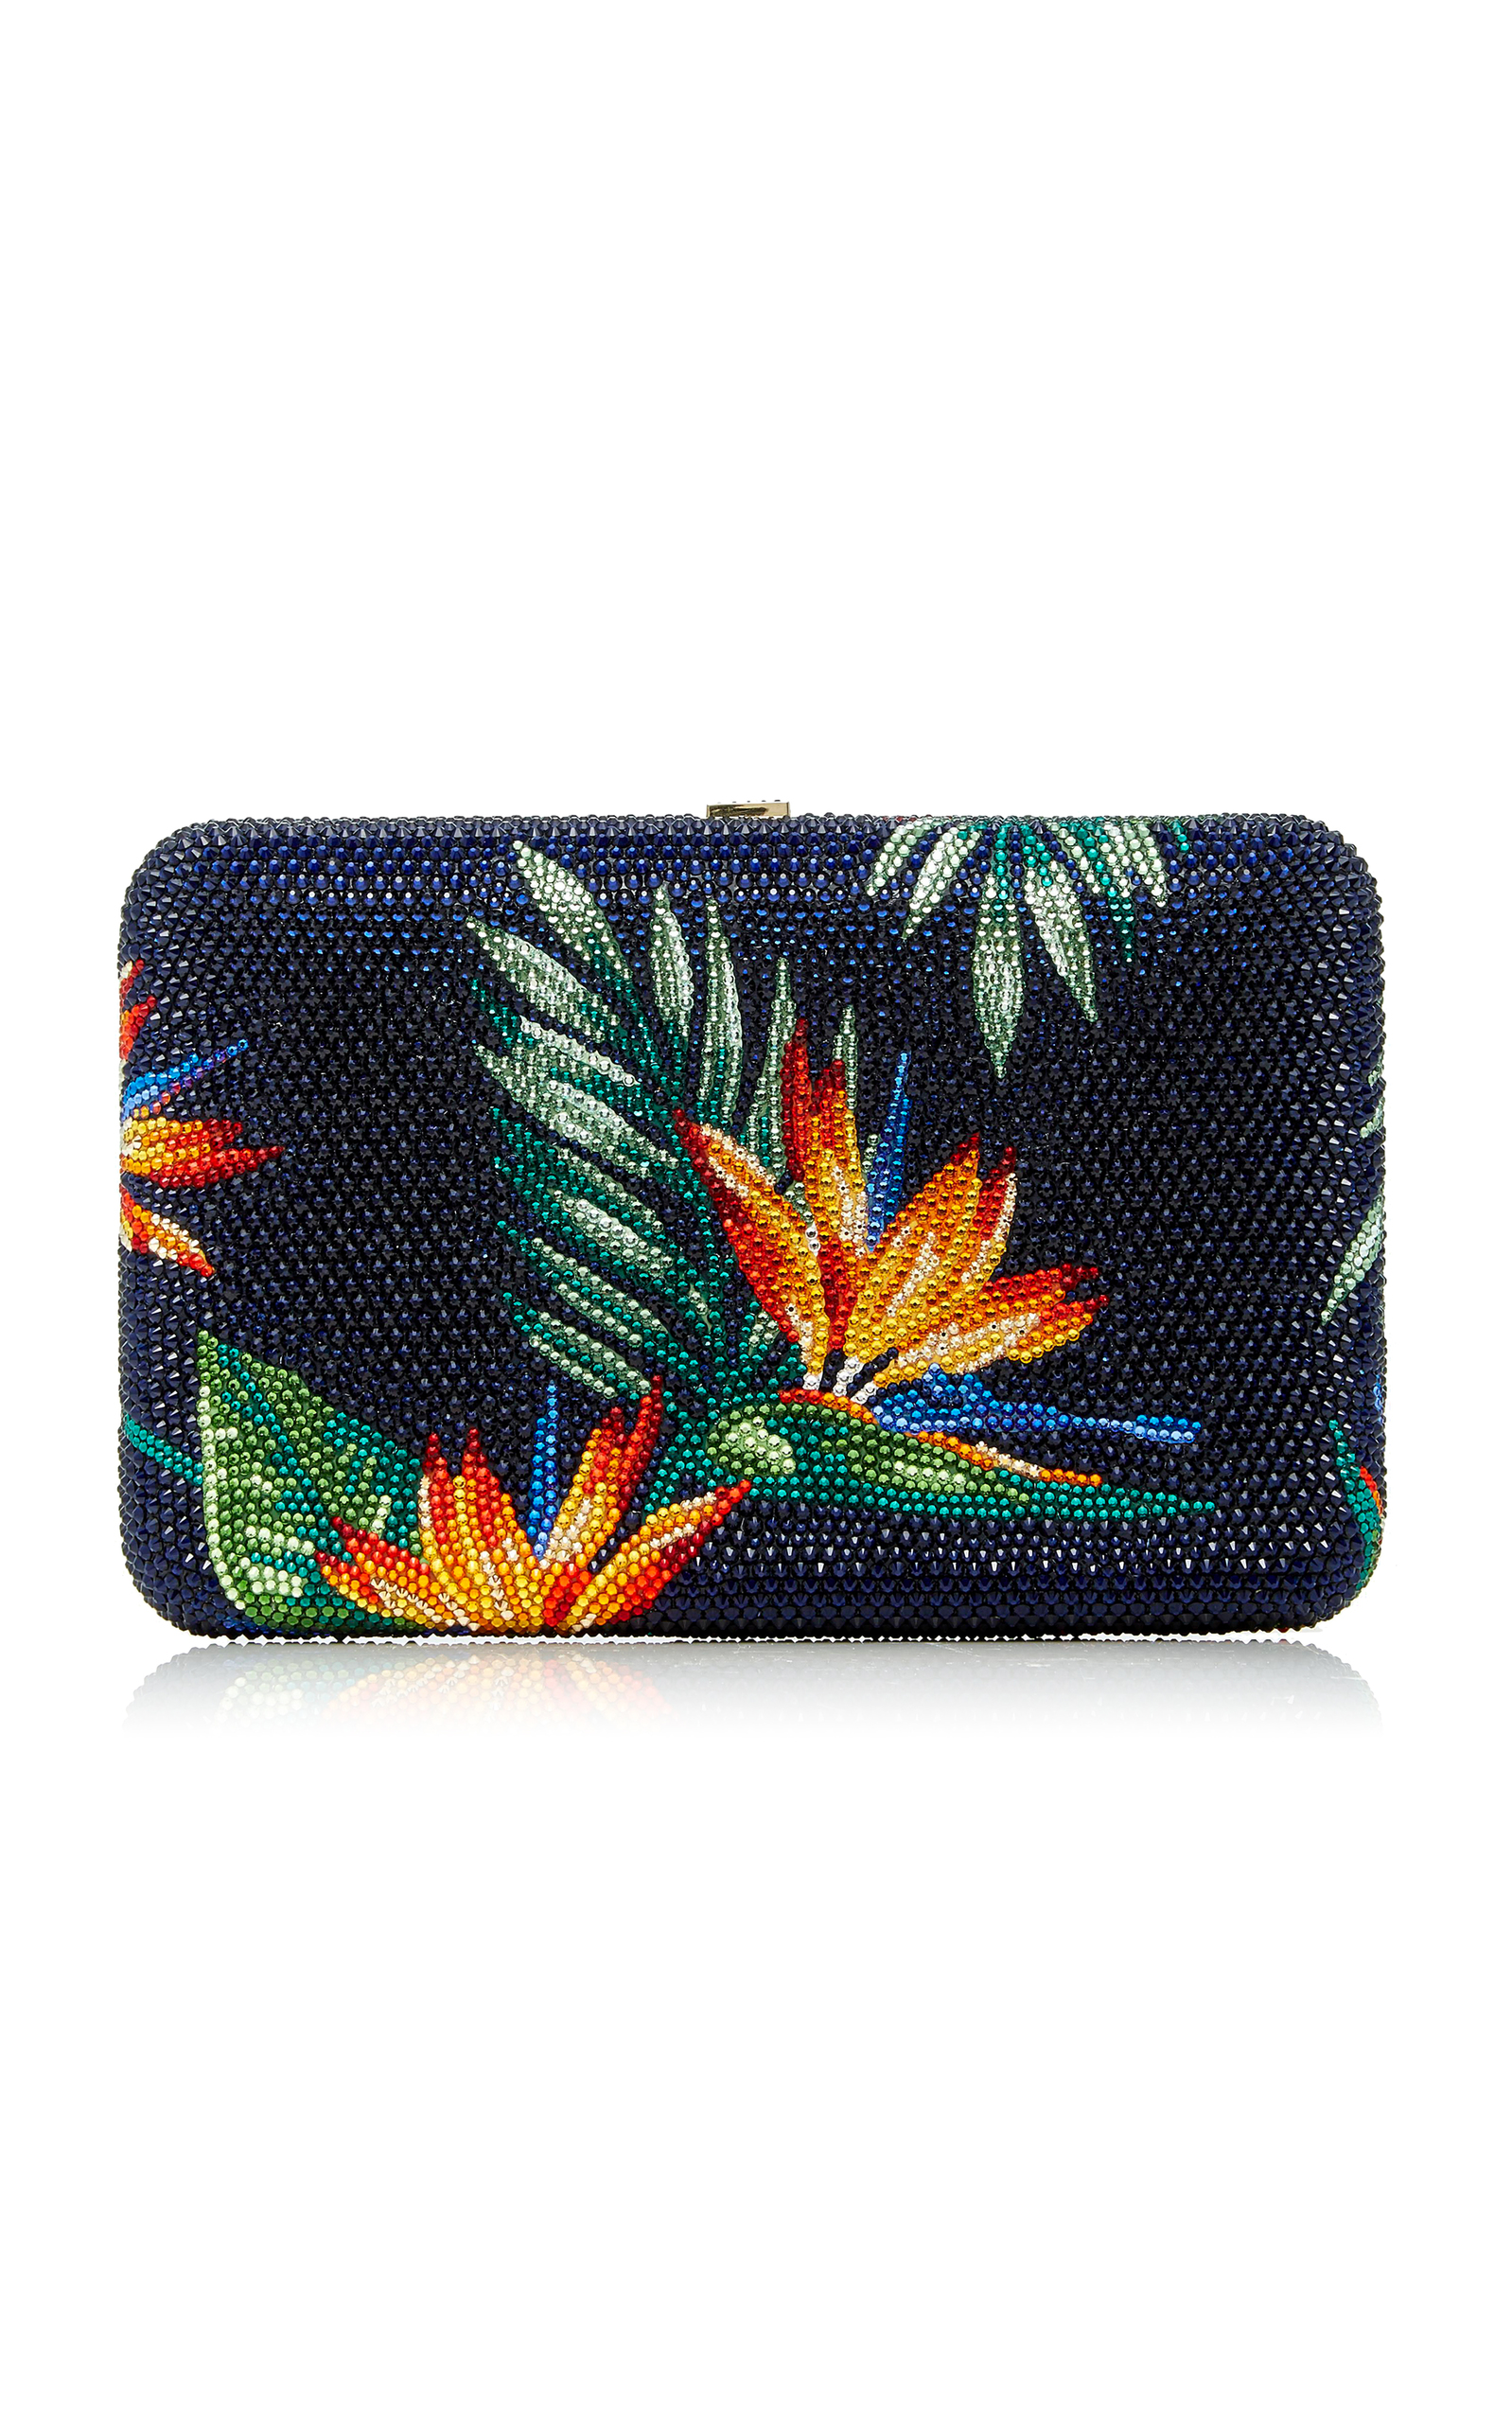 Wholesale Price Cheap Online Clearance Sneakernews Seamless Bird Of Paradise Clutch Judith Leiber New c119Jv2j